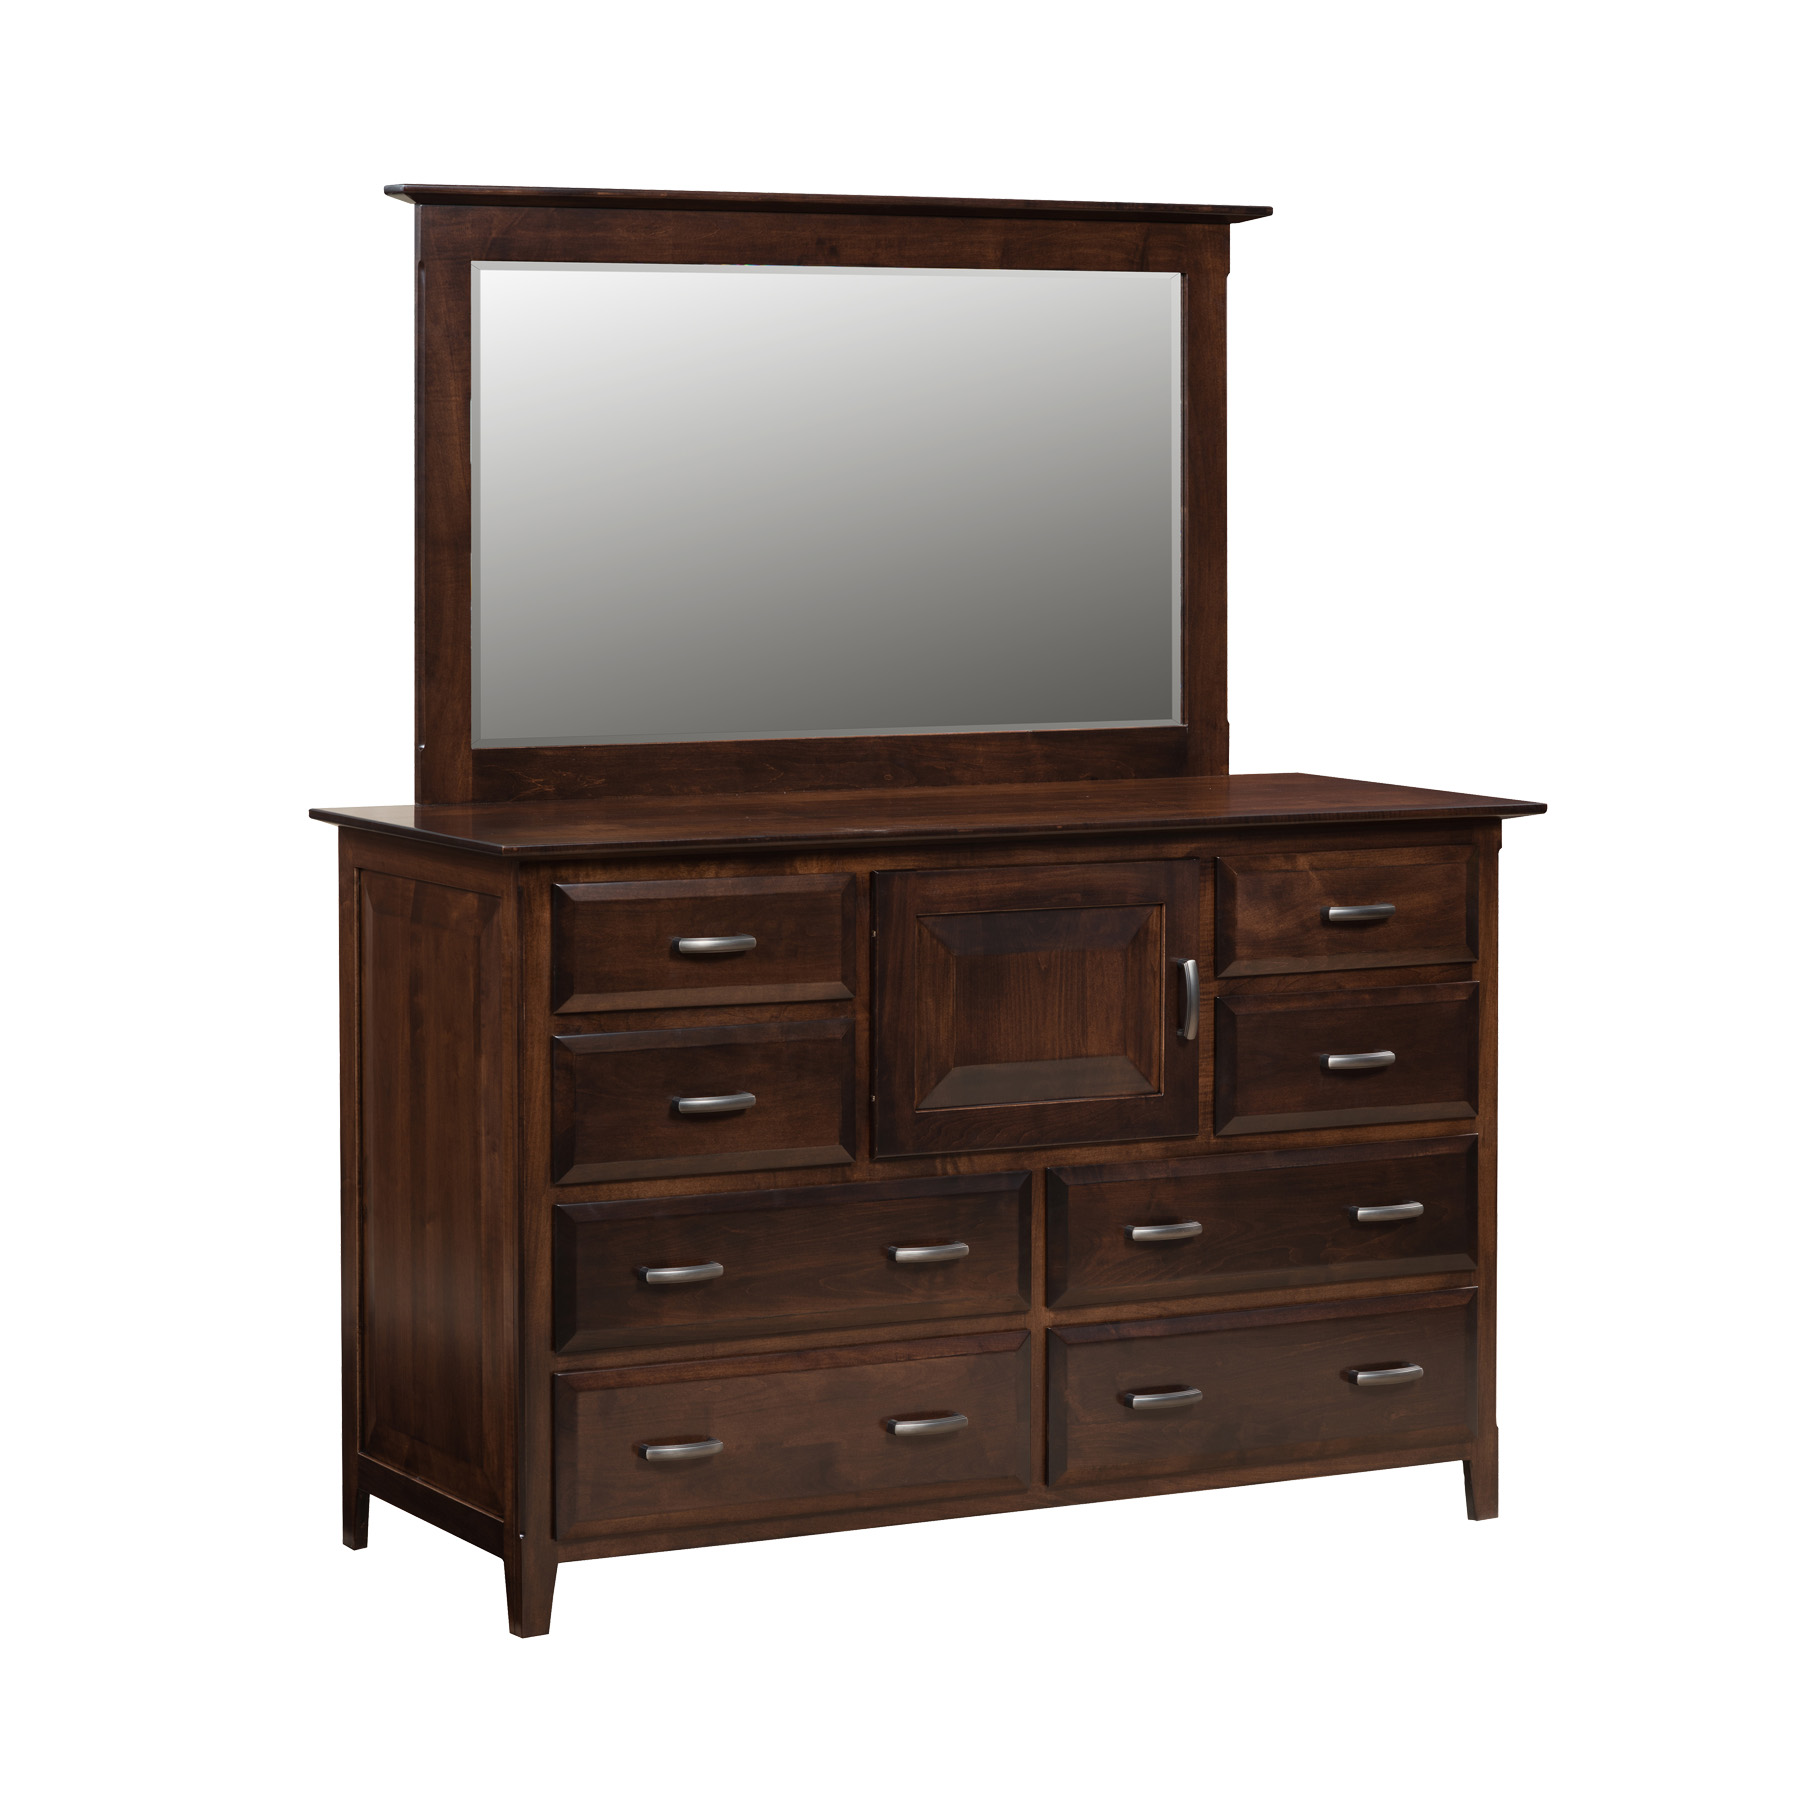 Worthington High Dresser with Door and M